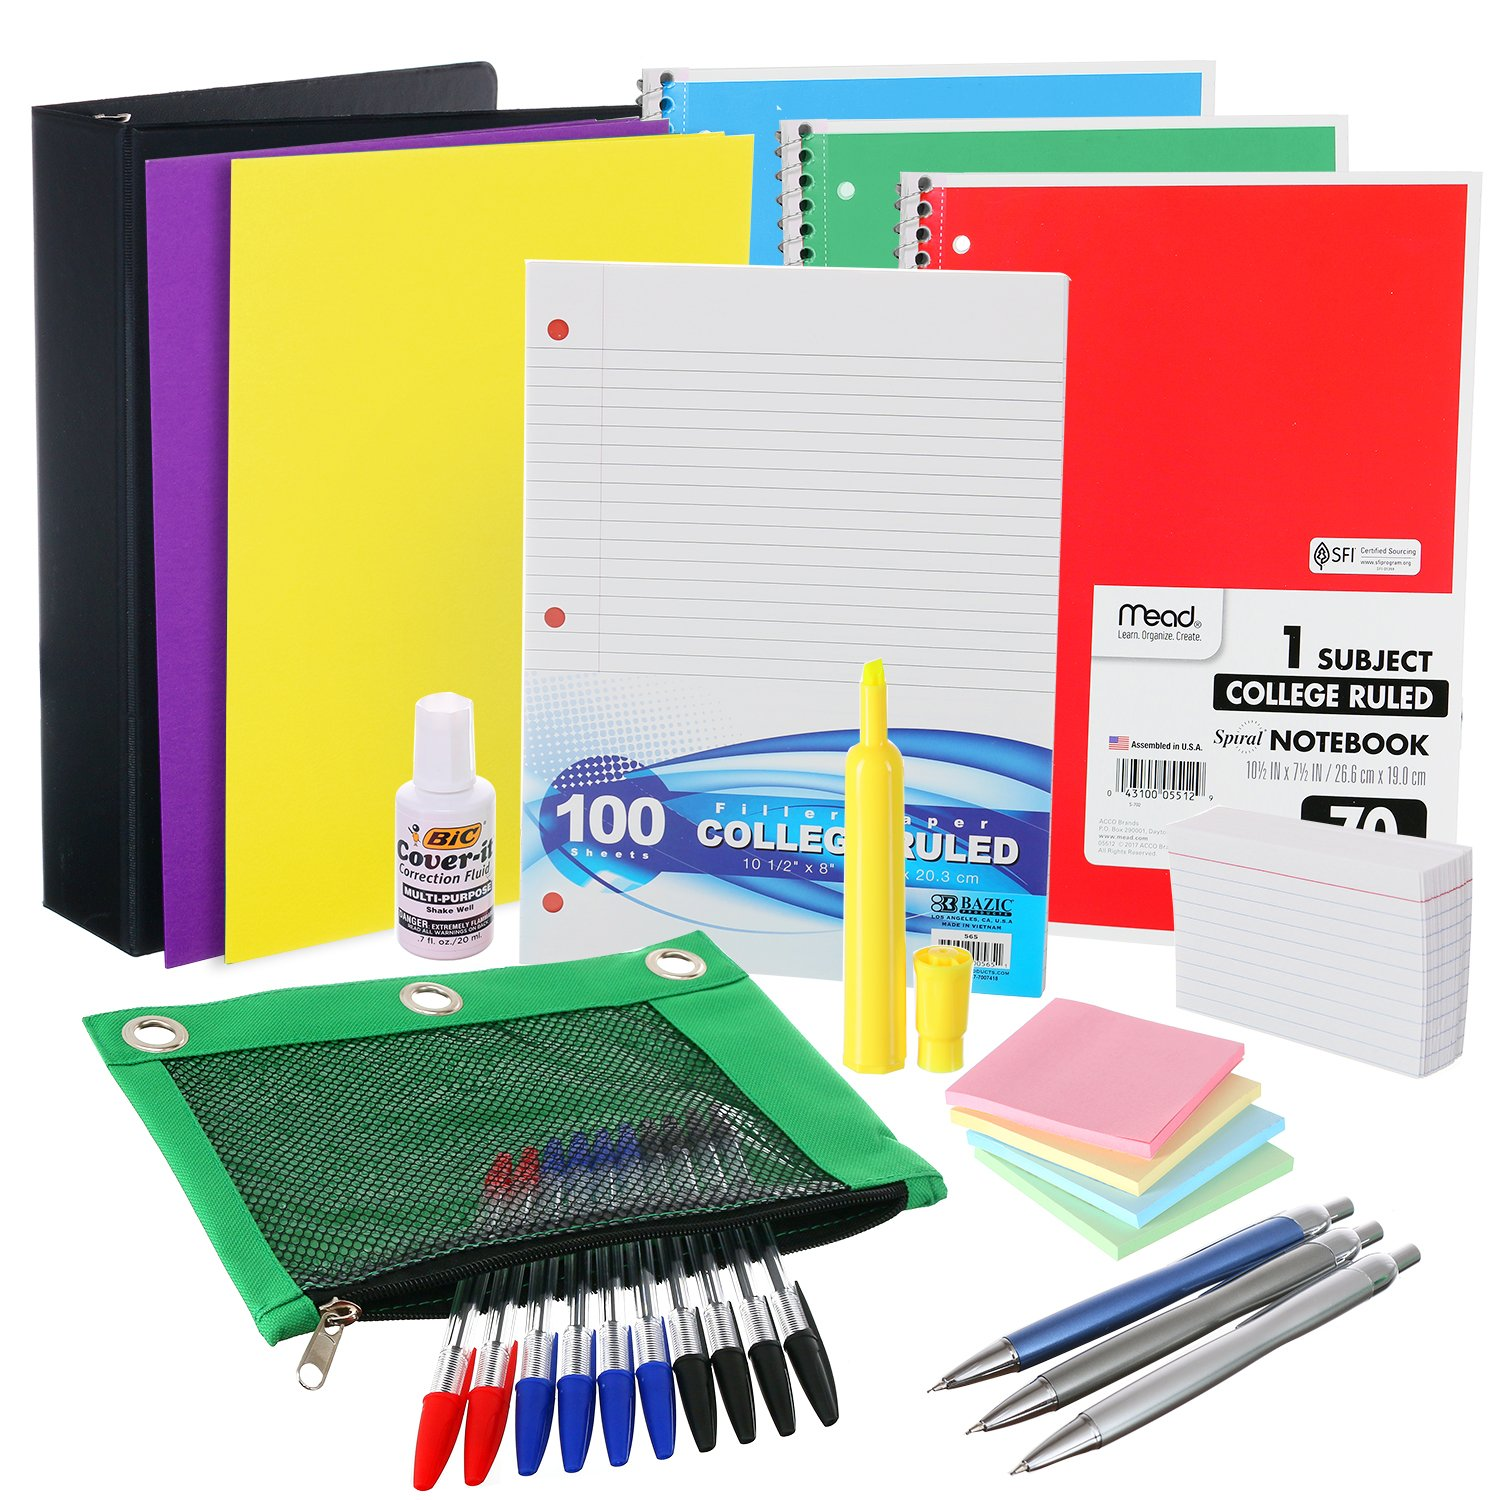 Back to School Supplies Kit for Eighth to Twelfth Grade Kids: The Complete Classroom Supply Bundle - Set of 20 High School Essentials - Pens, Notebooks, More Stuff